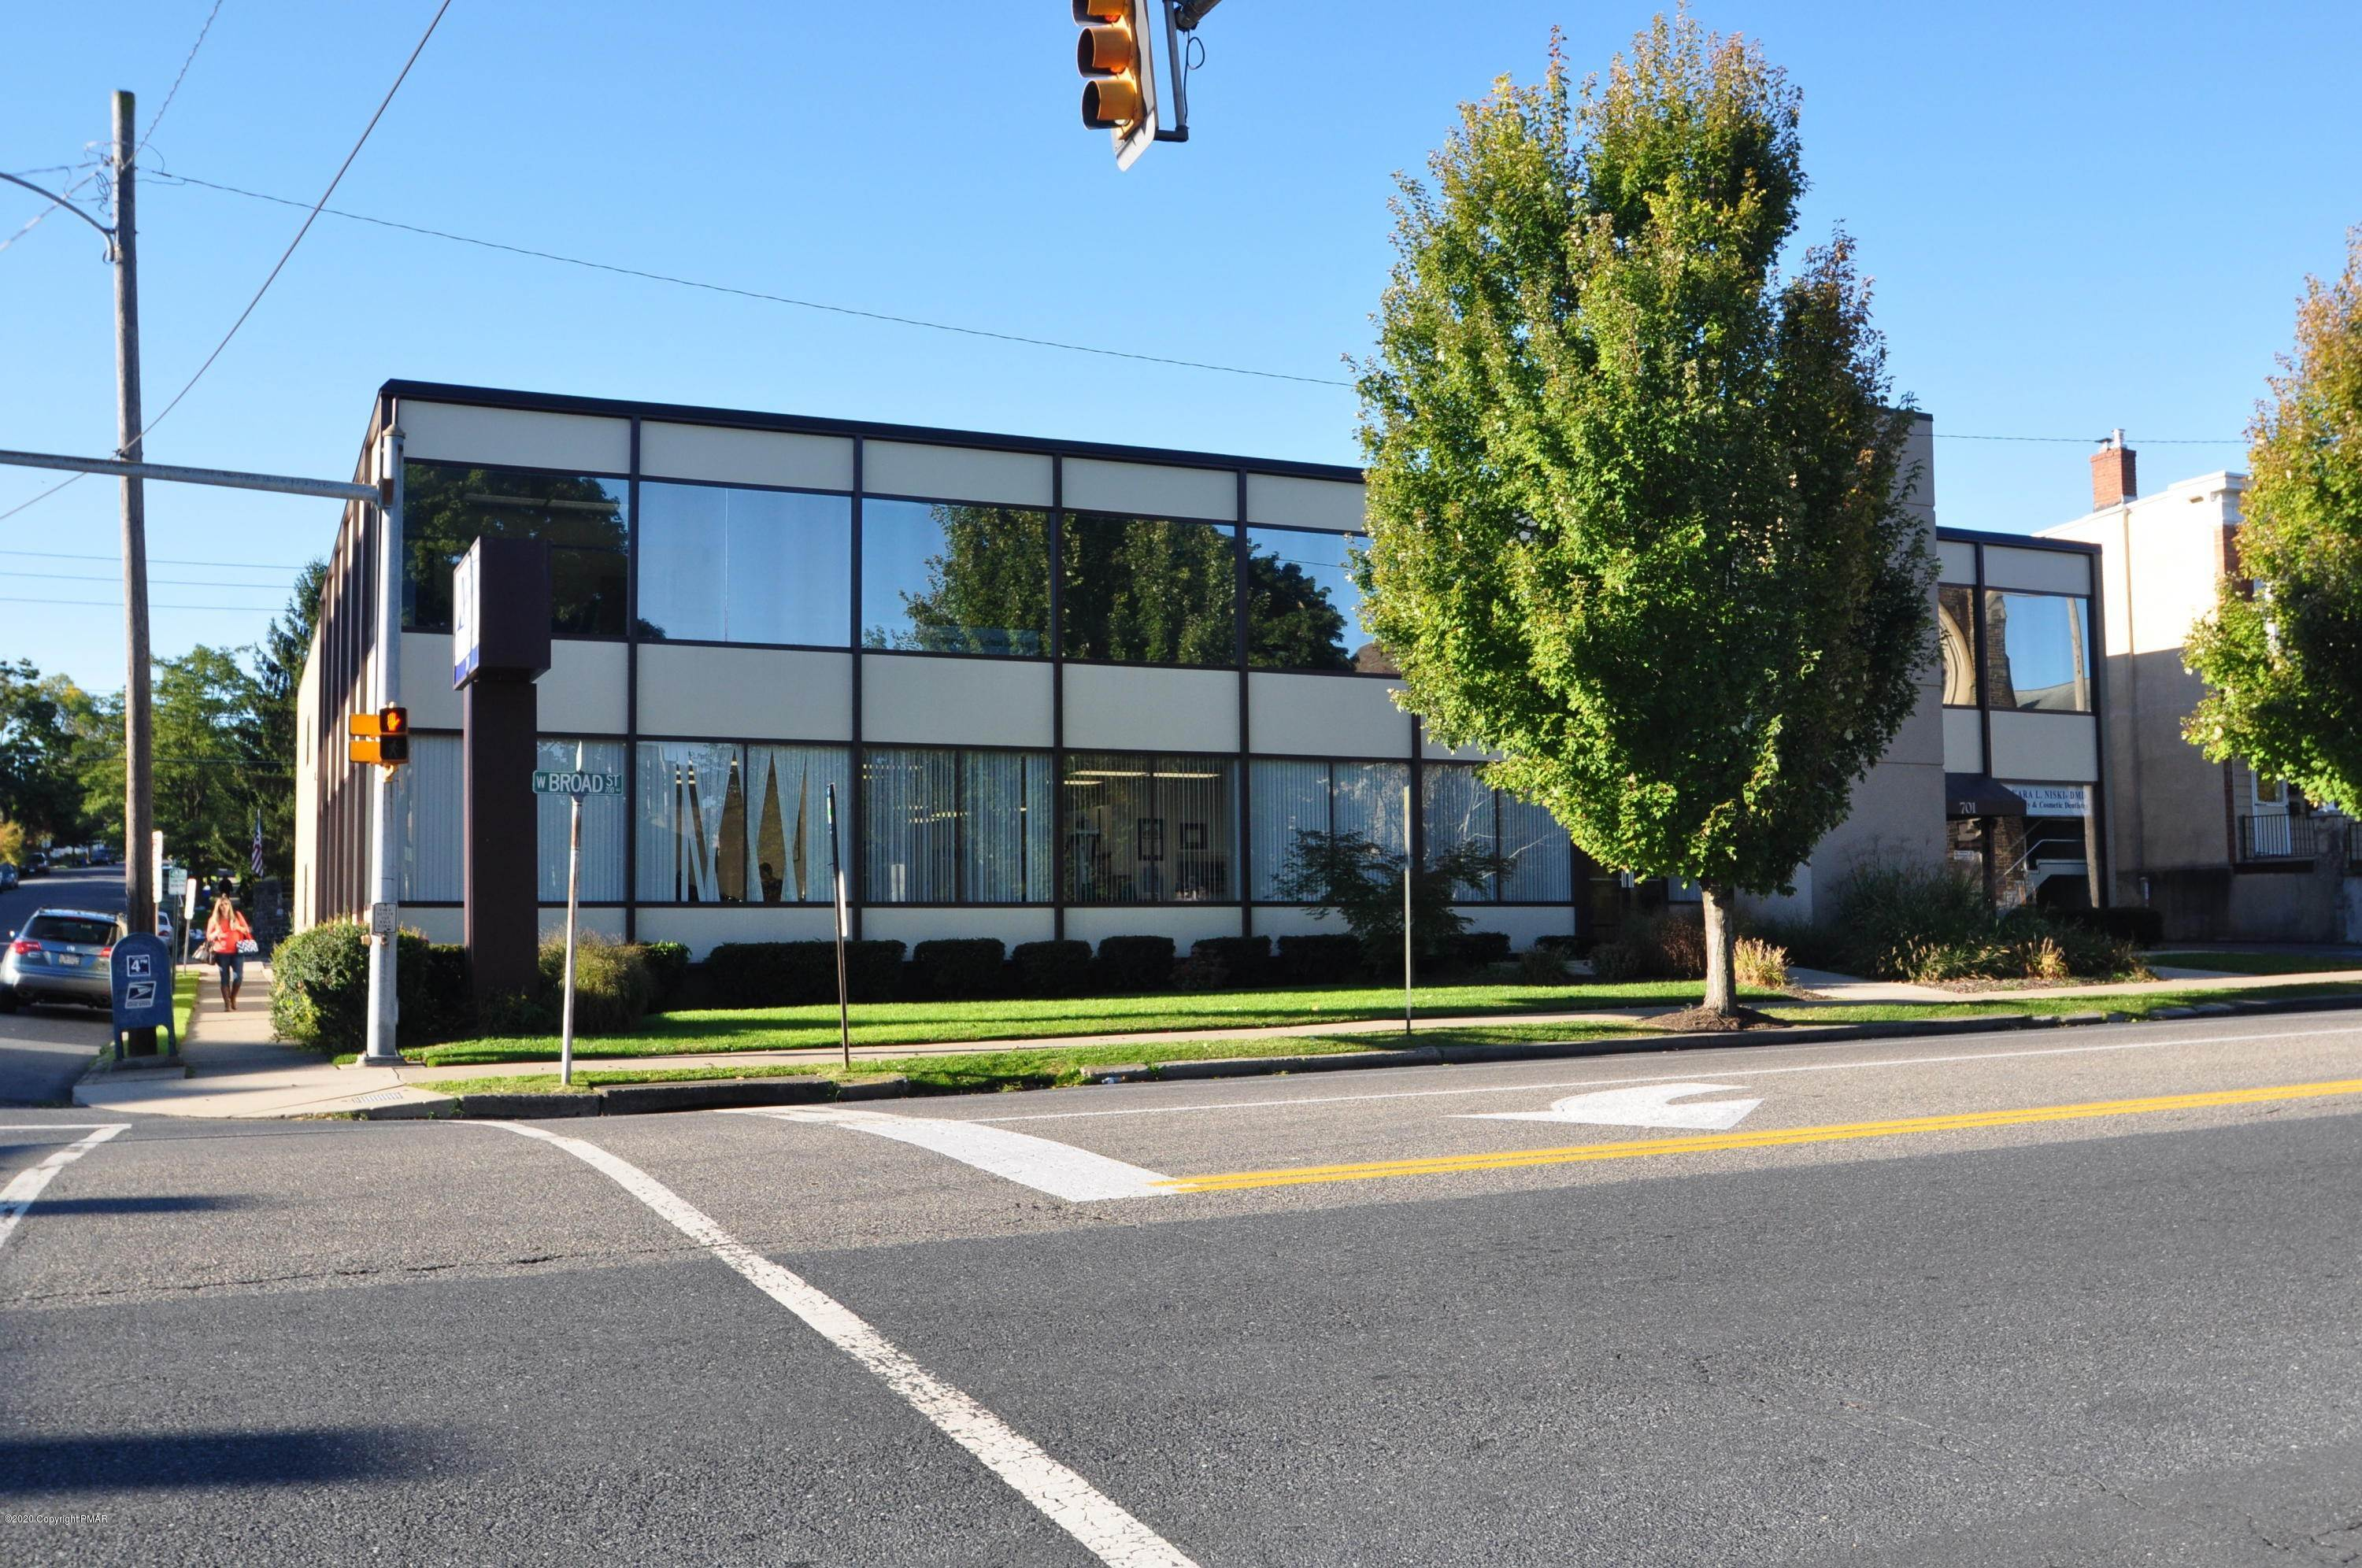 Commercial for Sale at 701 W Broad St Suite 206-219 Bethlehem, Pennsylvania 18018 United States